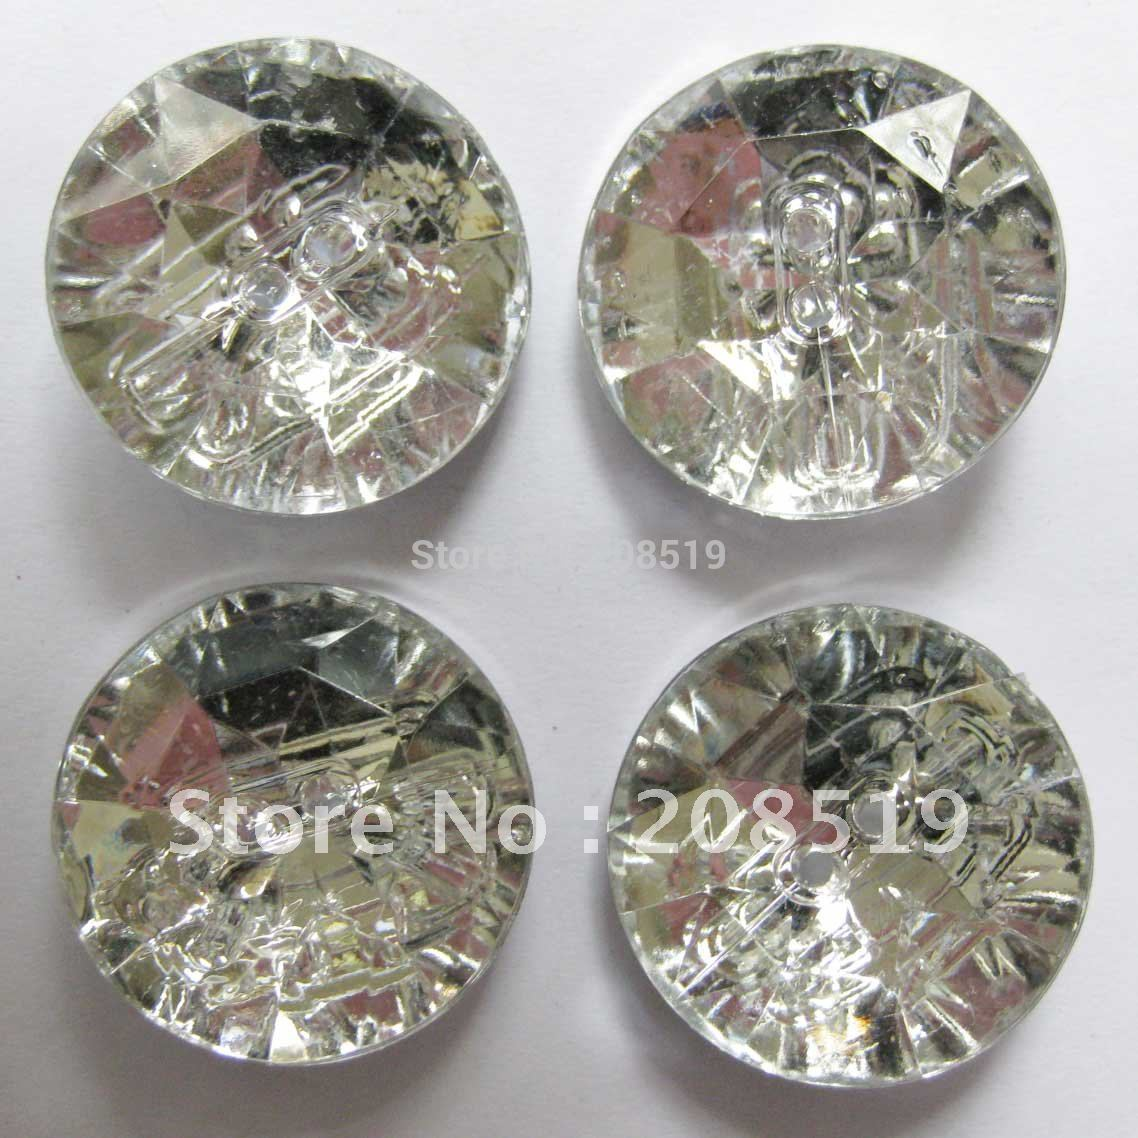 100% True Nb0024 Acrylic Crystal Buttons 20pcs Round 27.5mm 2 Holes Large Buttons Decorative Sofa Buttons Bringing More Convenience To The People In Their Daily Life 1.08